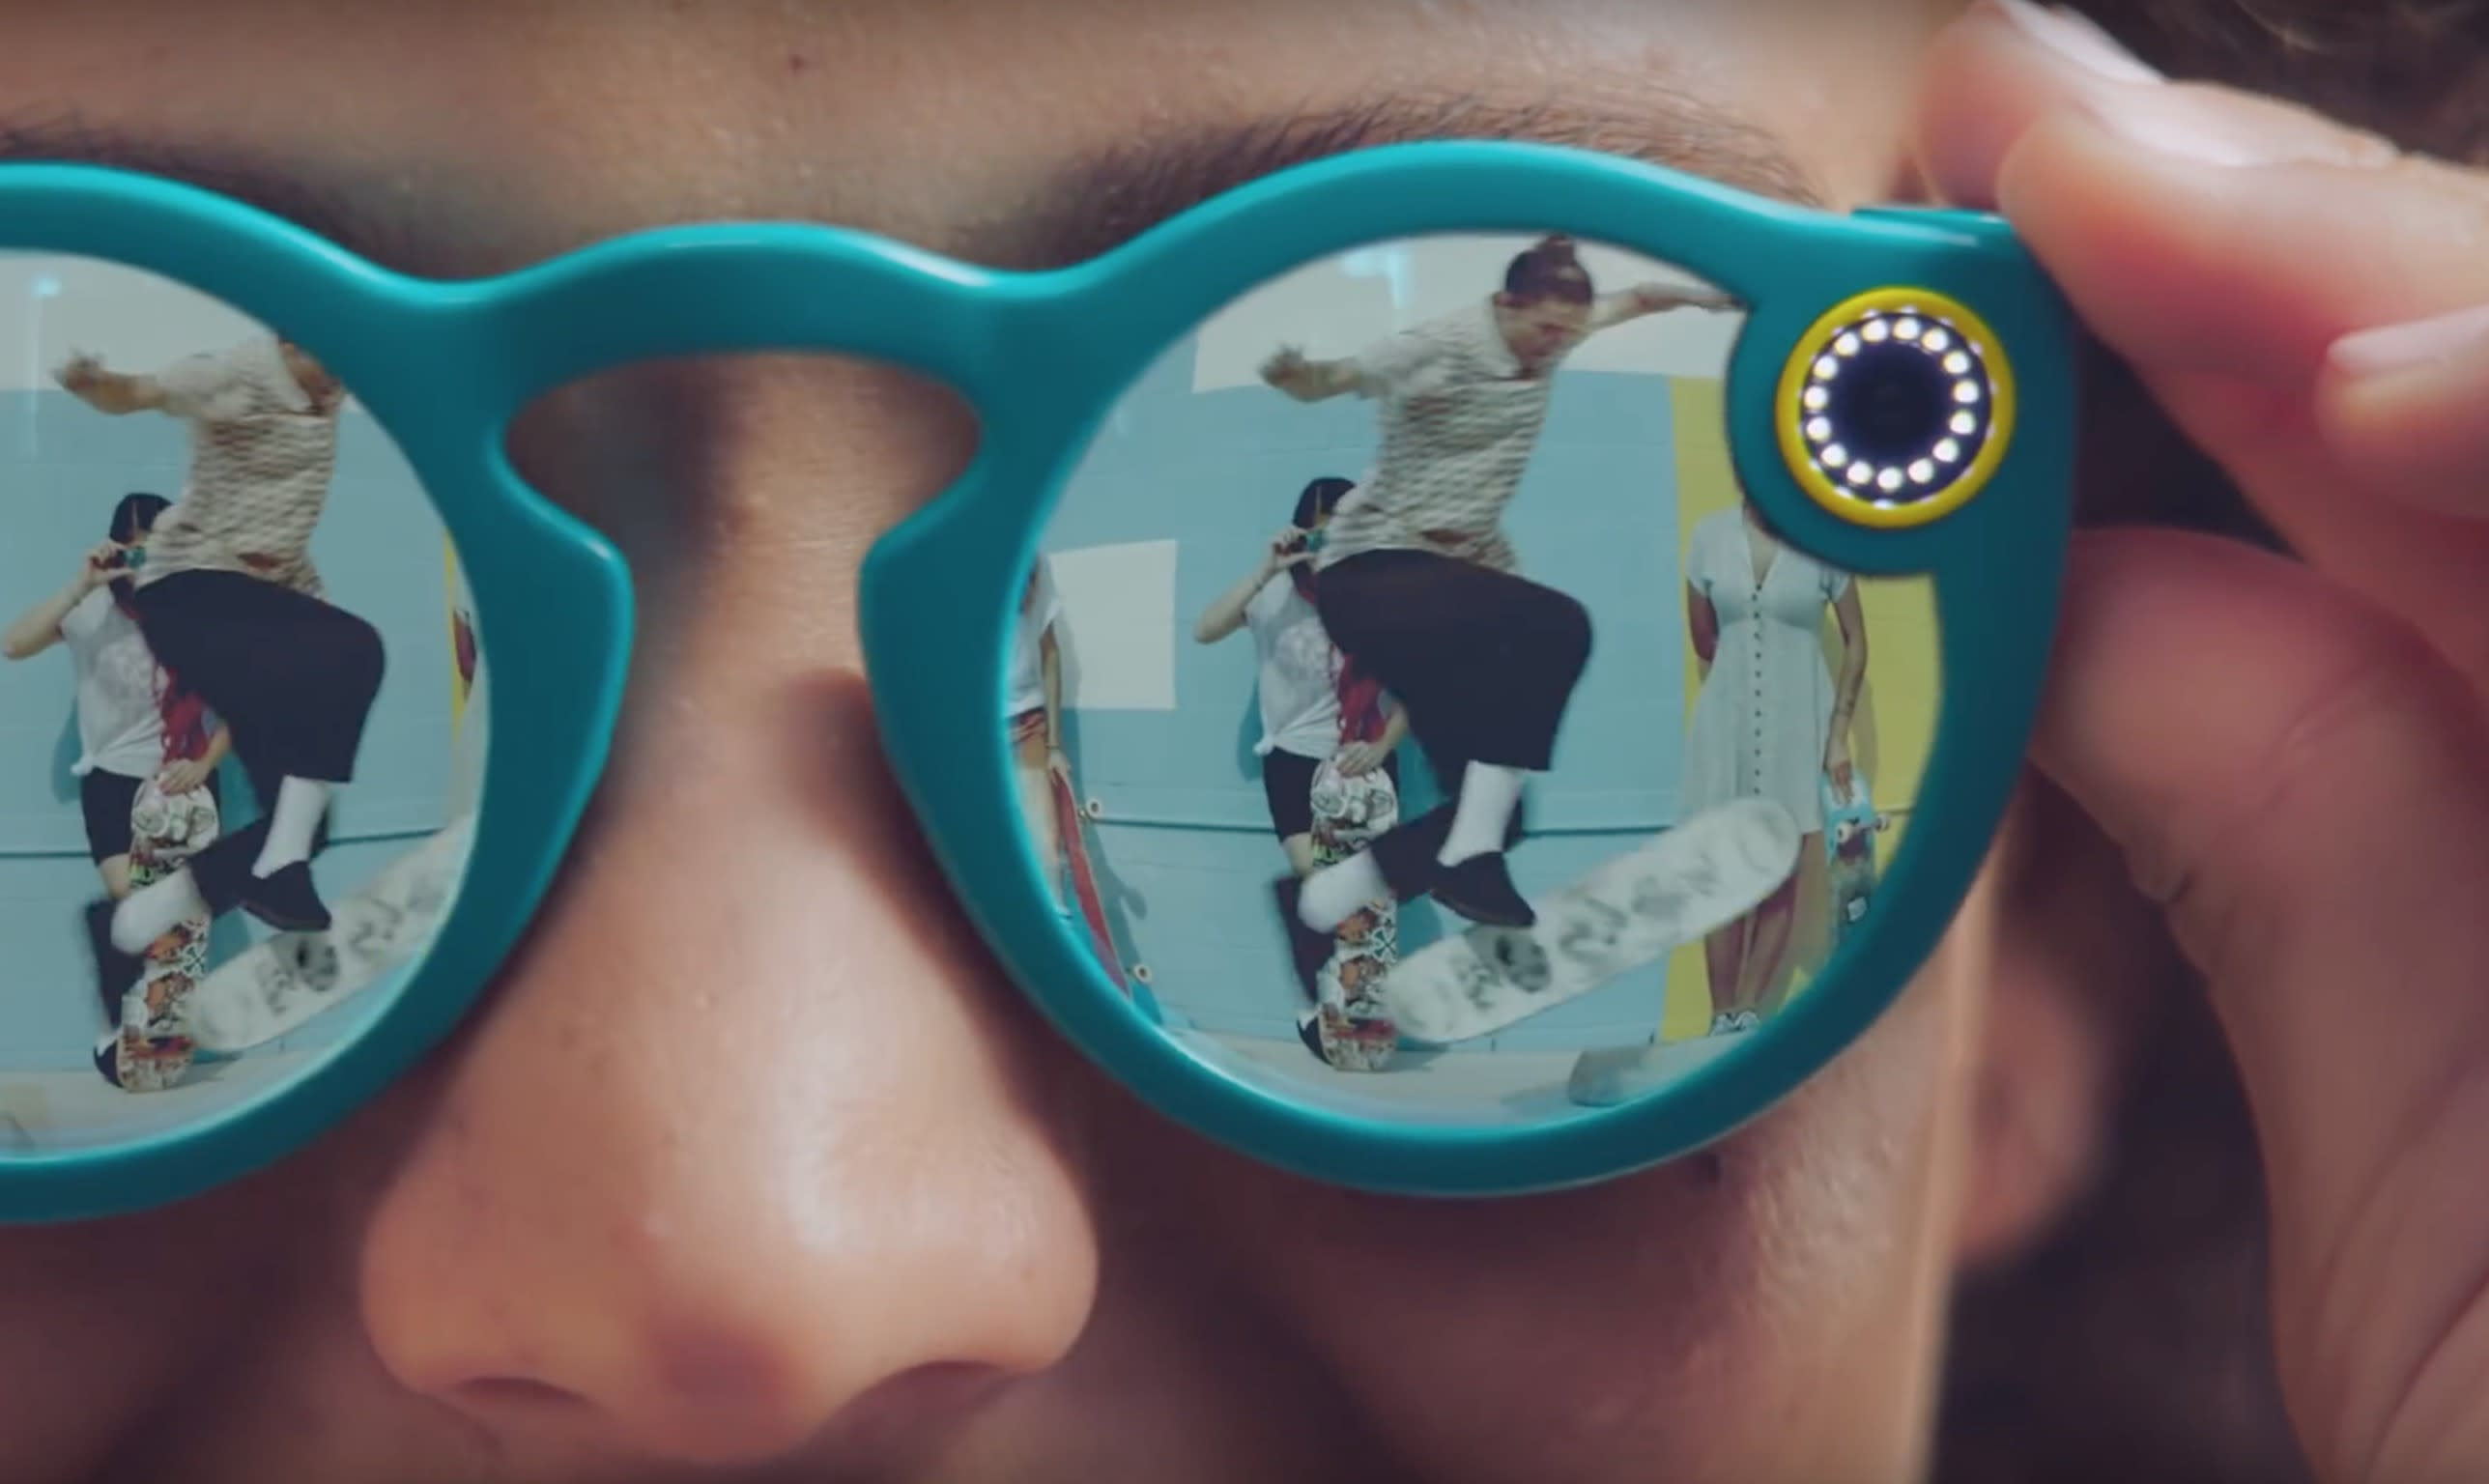 With Spectacles, Snap is doing something I haven't seen since the 1970s